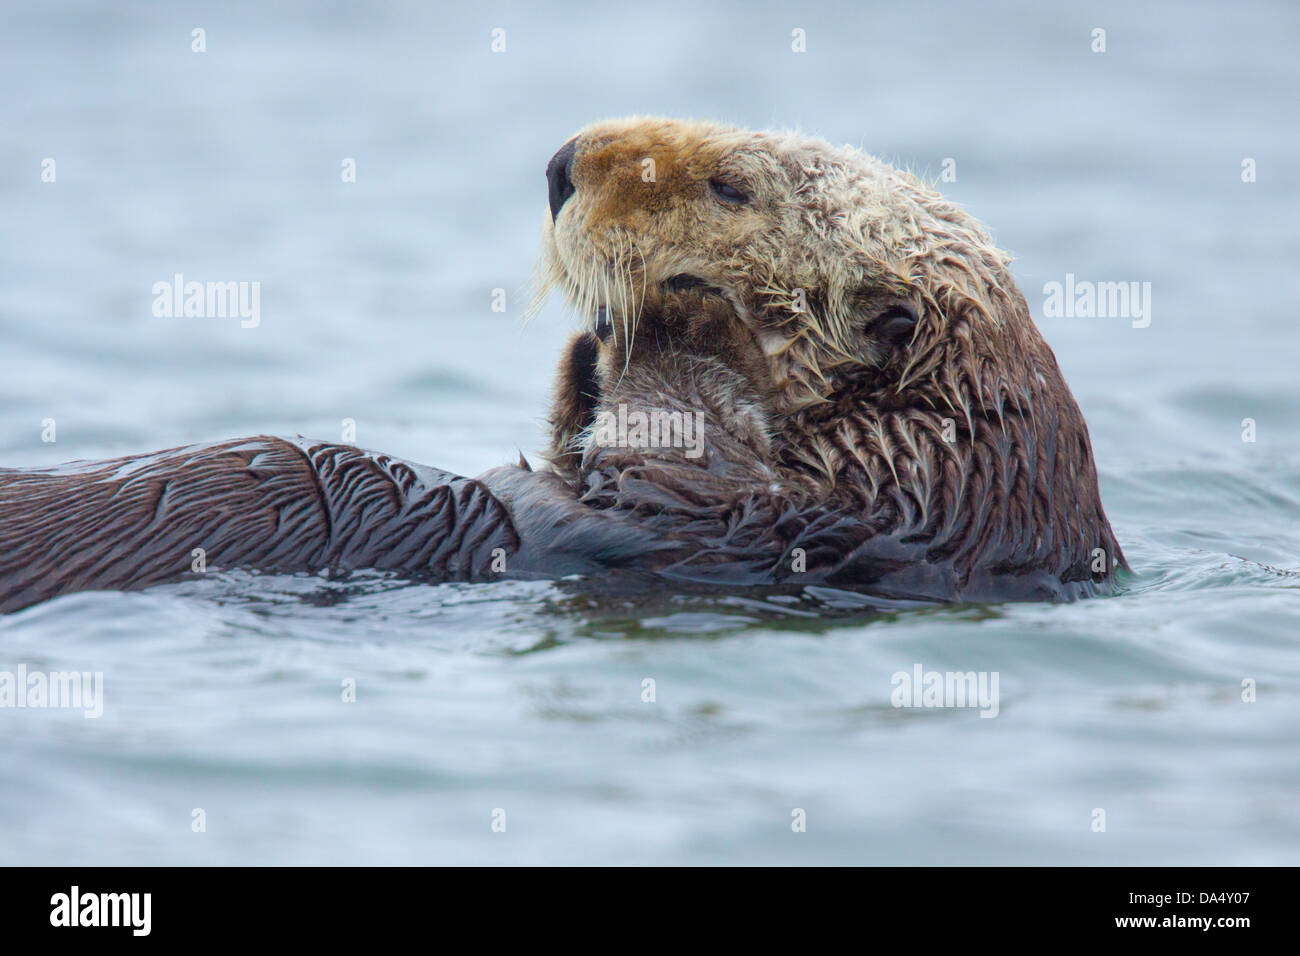 Sea Otter Enhydra lutris Moss Landing, California, United States 24 June Adult Mustelidae - Stock Image